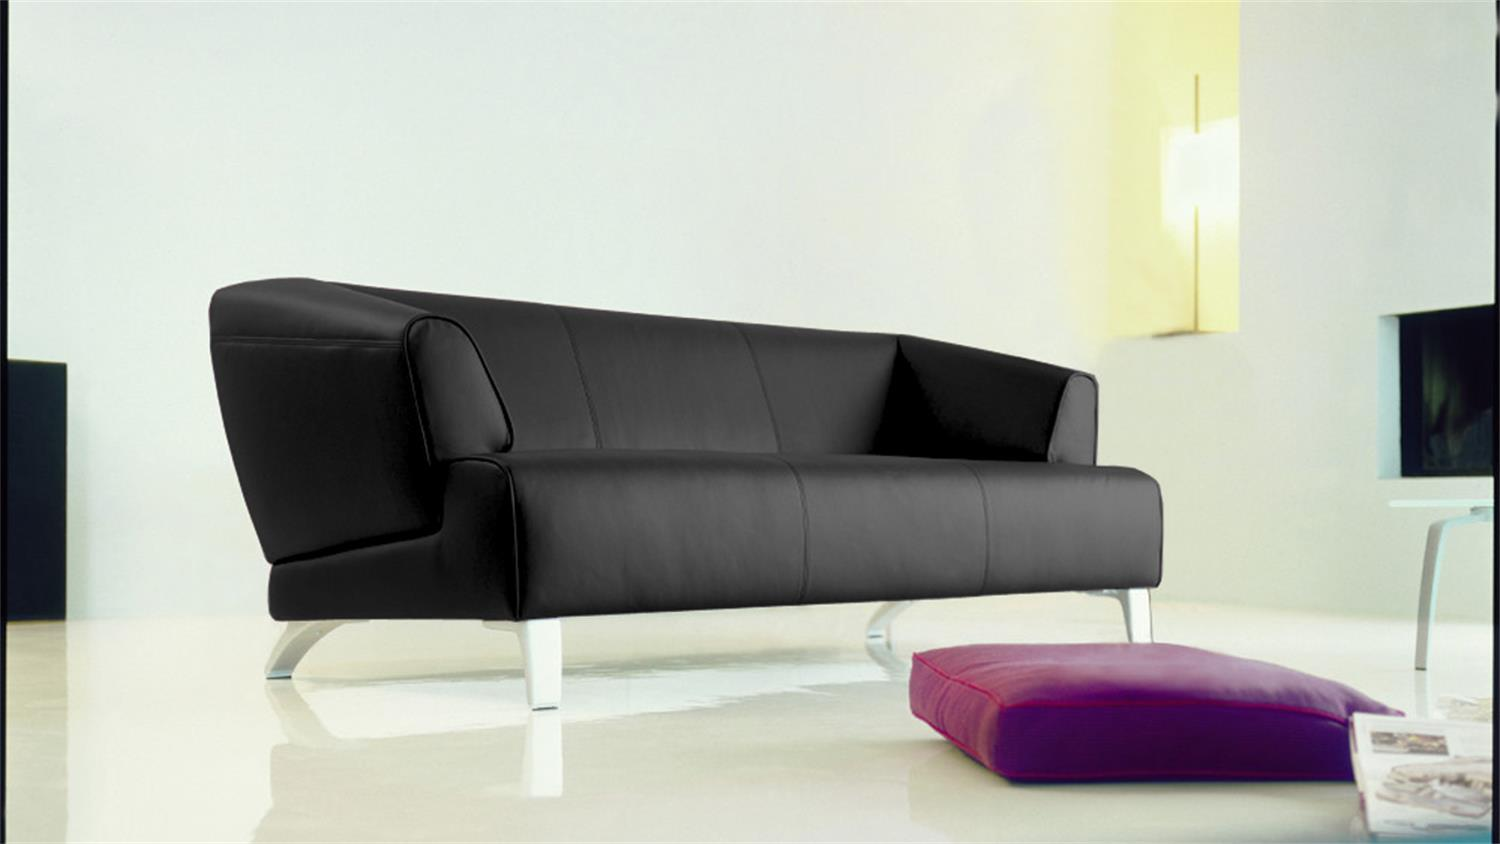 ledersofa schwarz rolf benz. Black Bedroom Furniture Sets. Home Design Ideas